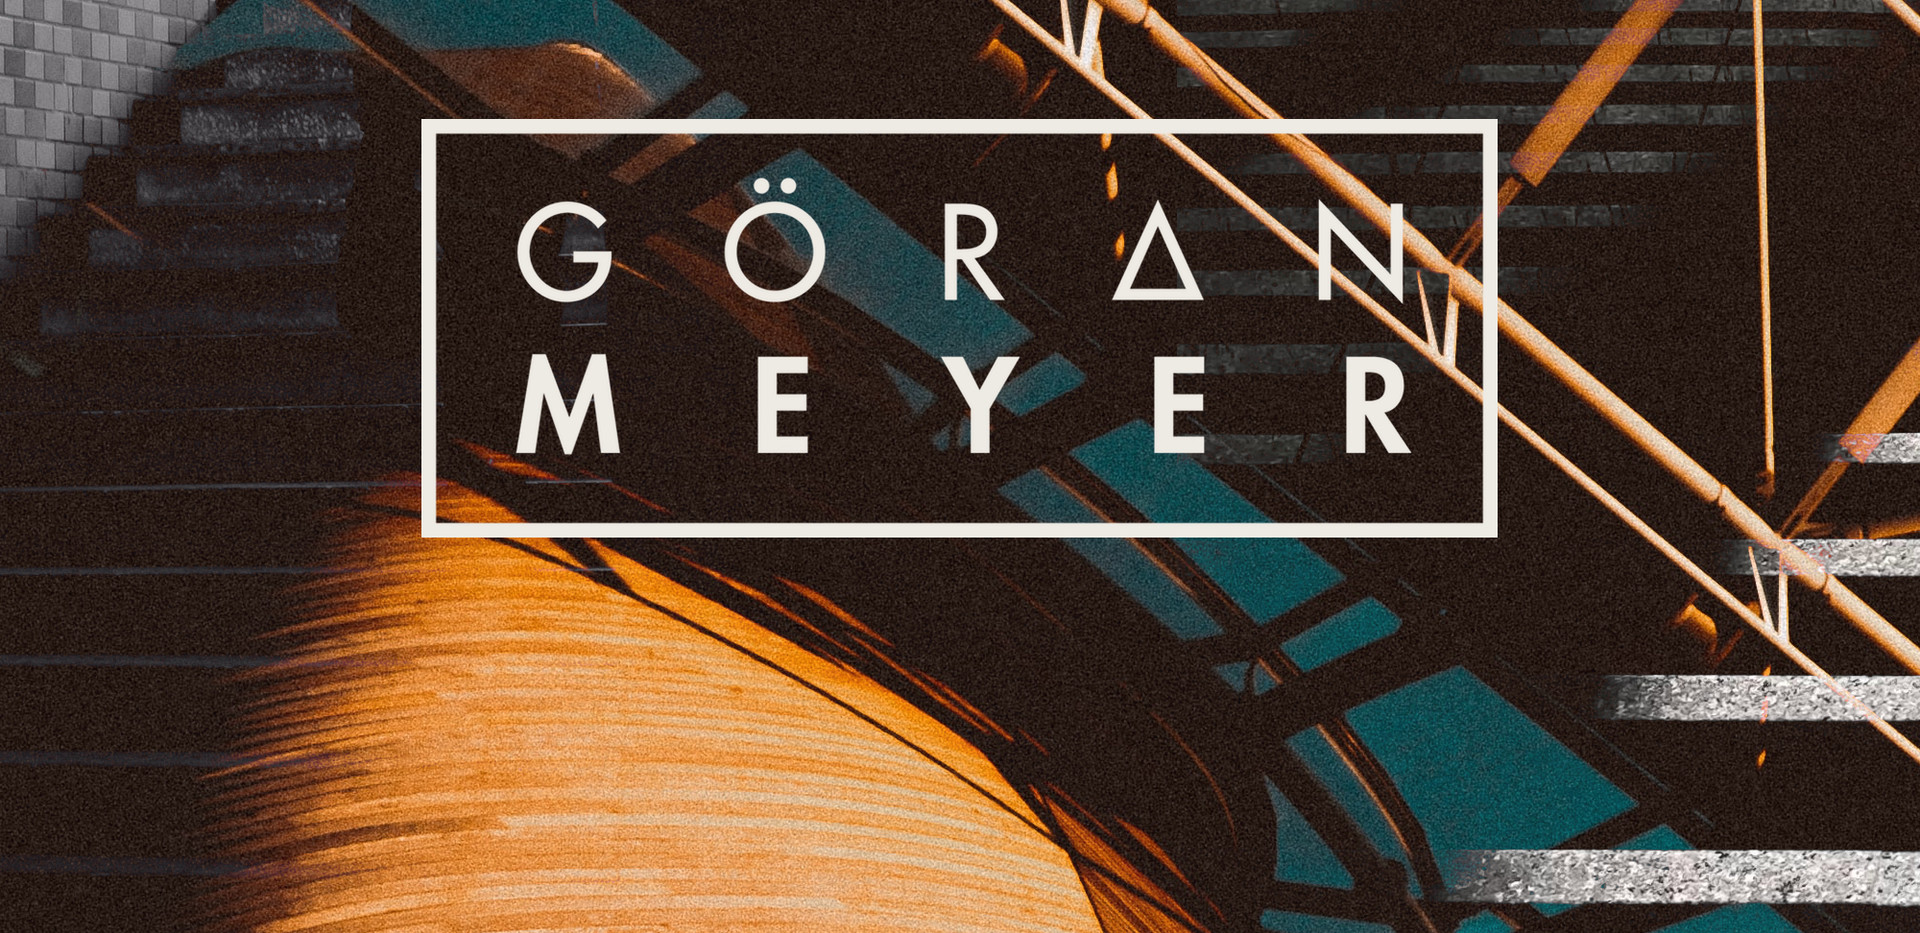 Goeran Meyer - Monthly Episode #02.21